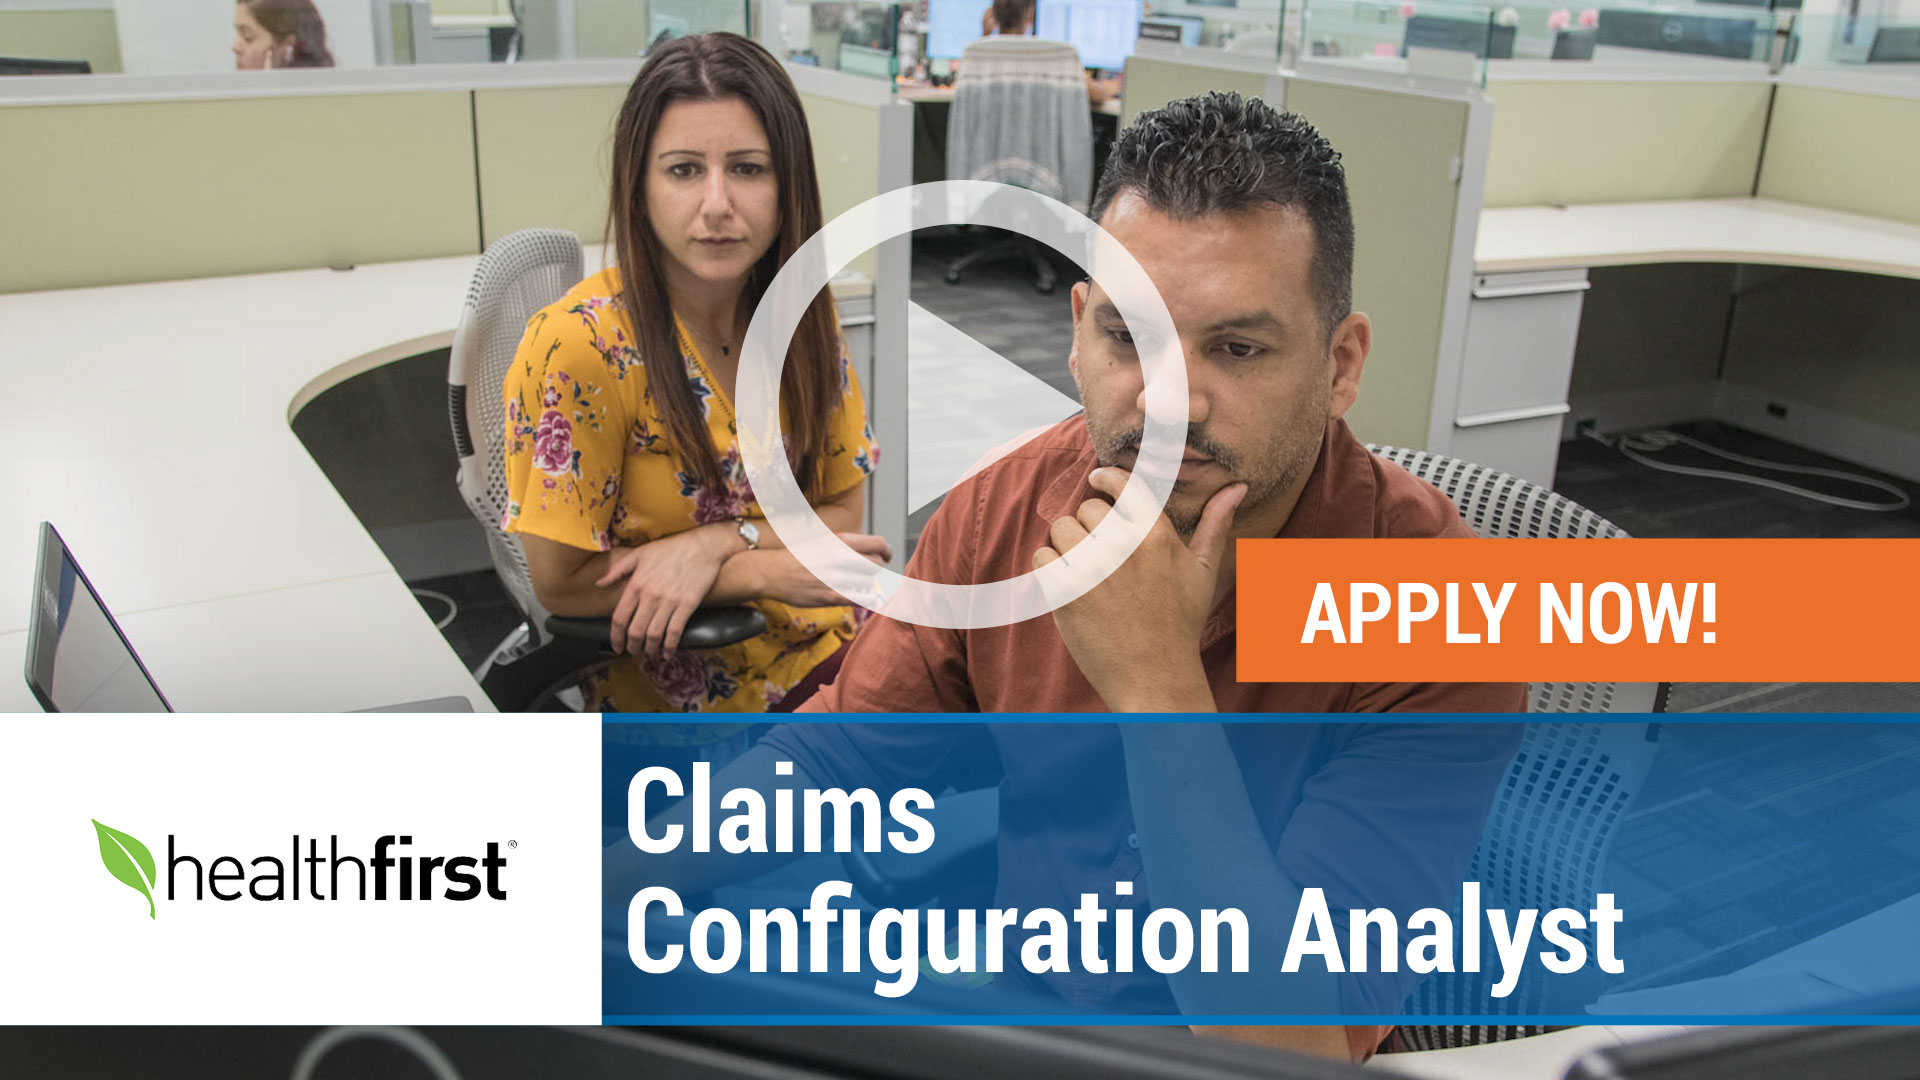 Watch our careers video for available job opening Benefits Design Analyst in New York, NY